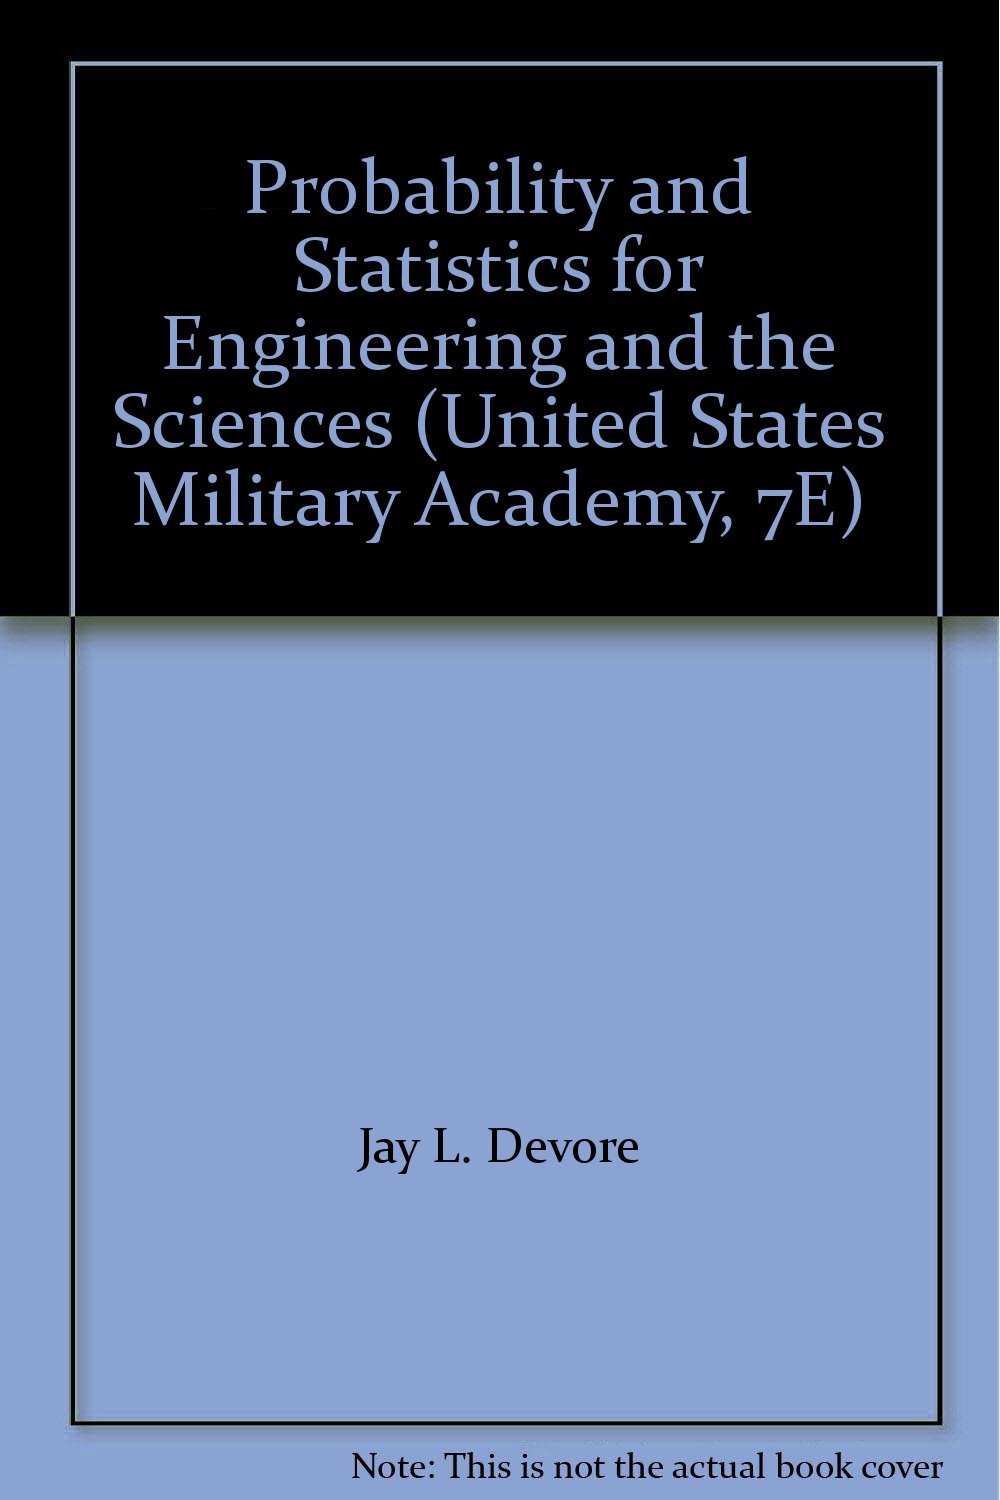 Probability and Statistics for Engineering and the Sciences (United States  Military Academy, 7E): Amazon.com: Books